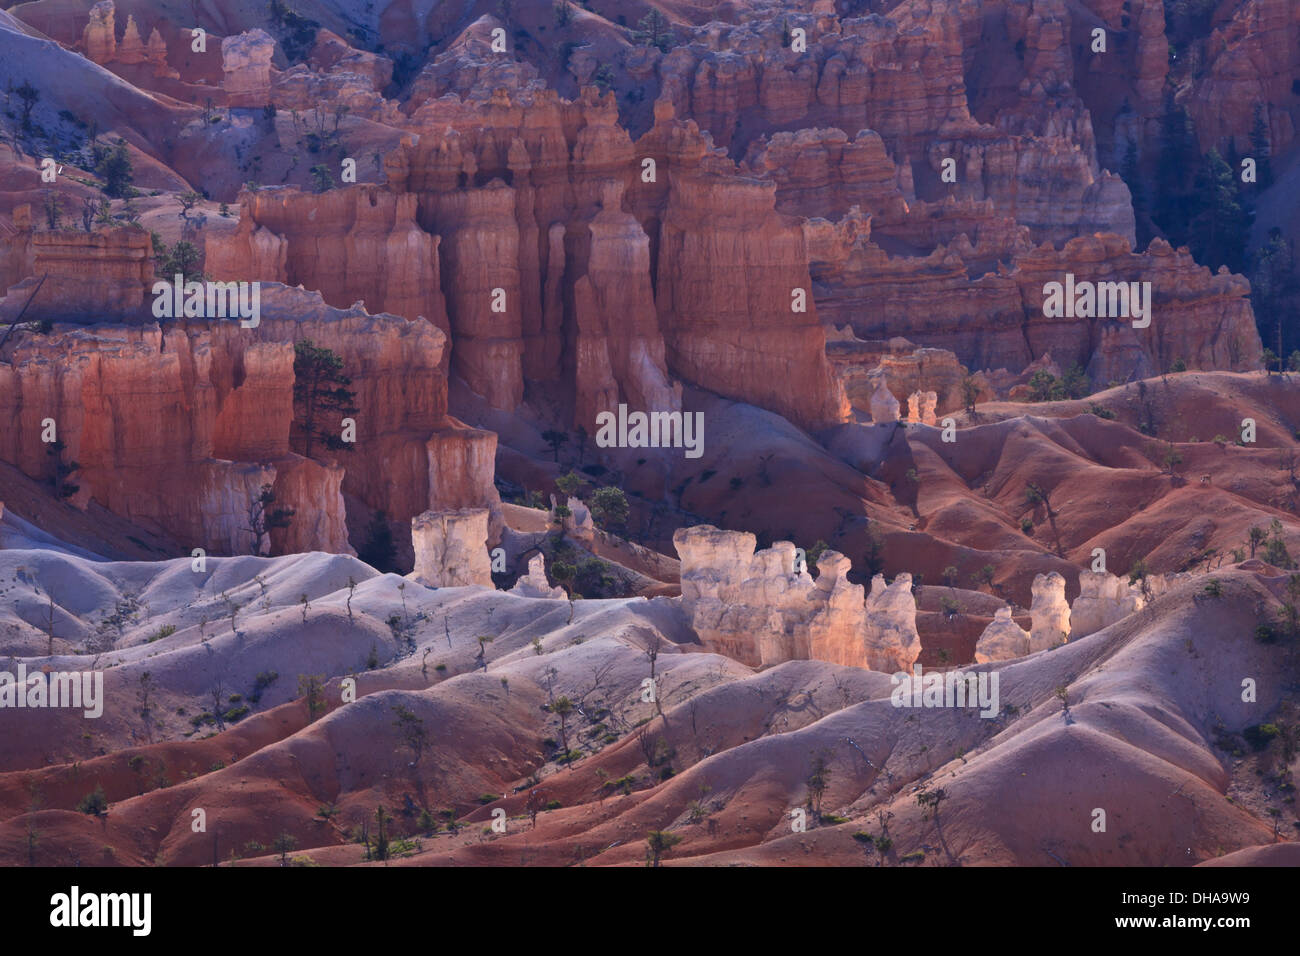 Soft light in Bryce Canyon illuminates whilte limestone hoodoos amidst the sand dunes on the valley floor. - Stock Image